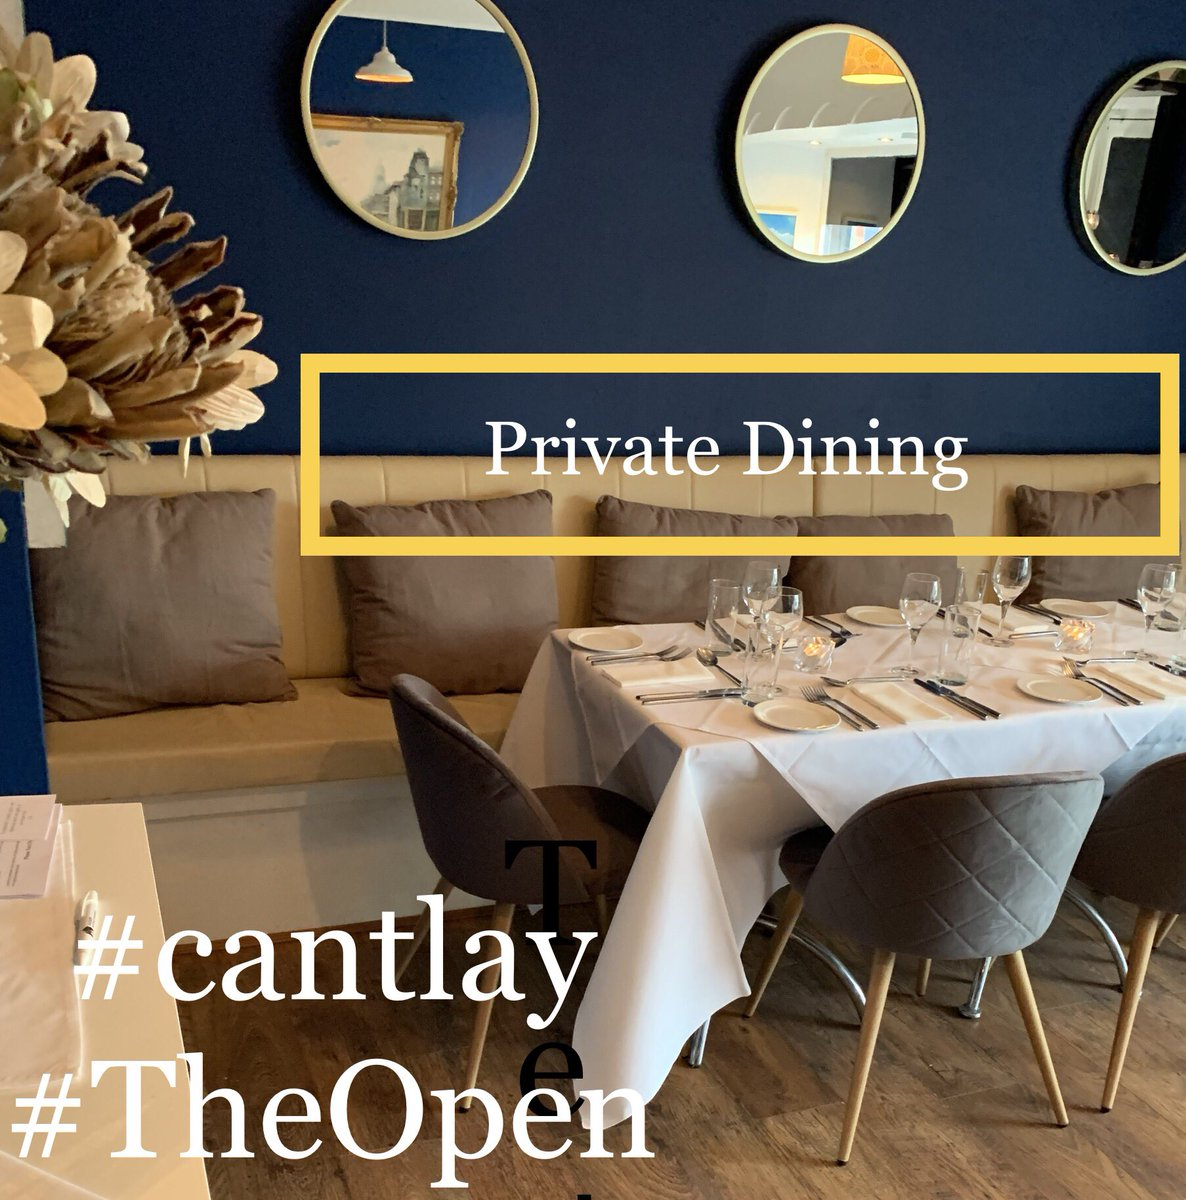 Good luck to All the golfers today @royalportrush @TheOpen for the final day of golfing and a big cheer from Tartine  to Patrick Cantlay...have a great day & thanks for visiting #tastecauseway #bushmills #tartine https://t.co/xBmaInuNXl